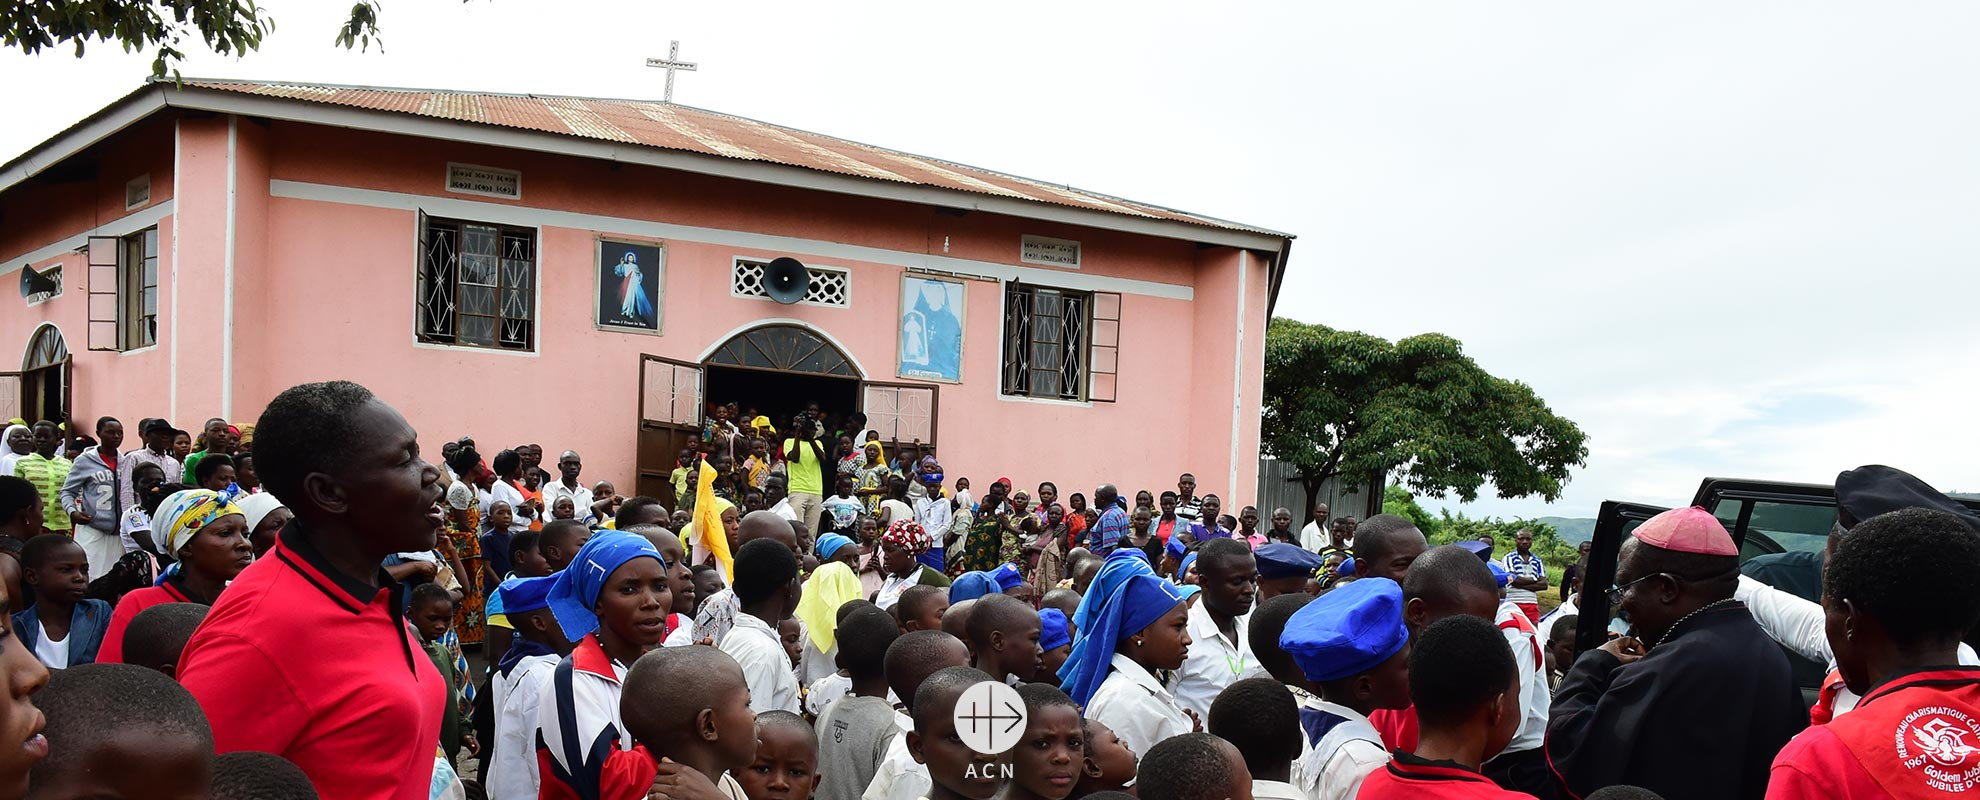 Uganda: Many pilgrims make the long journey on foot – A new place of particular grace comes into being